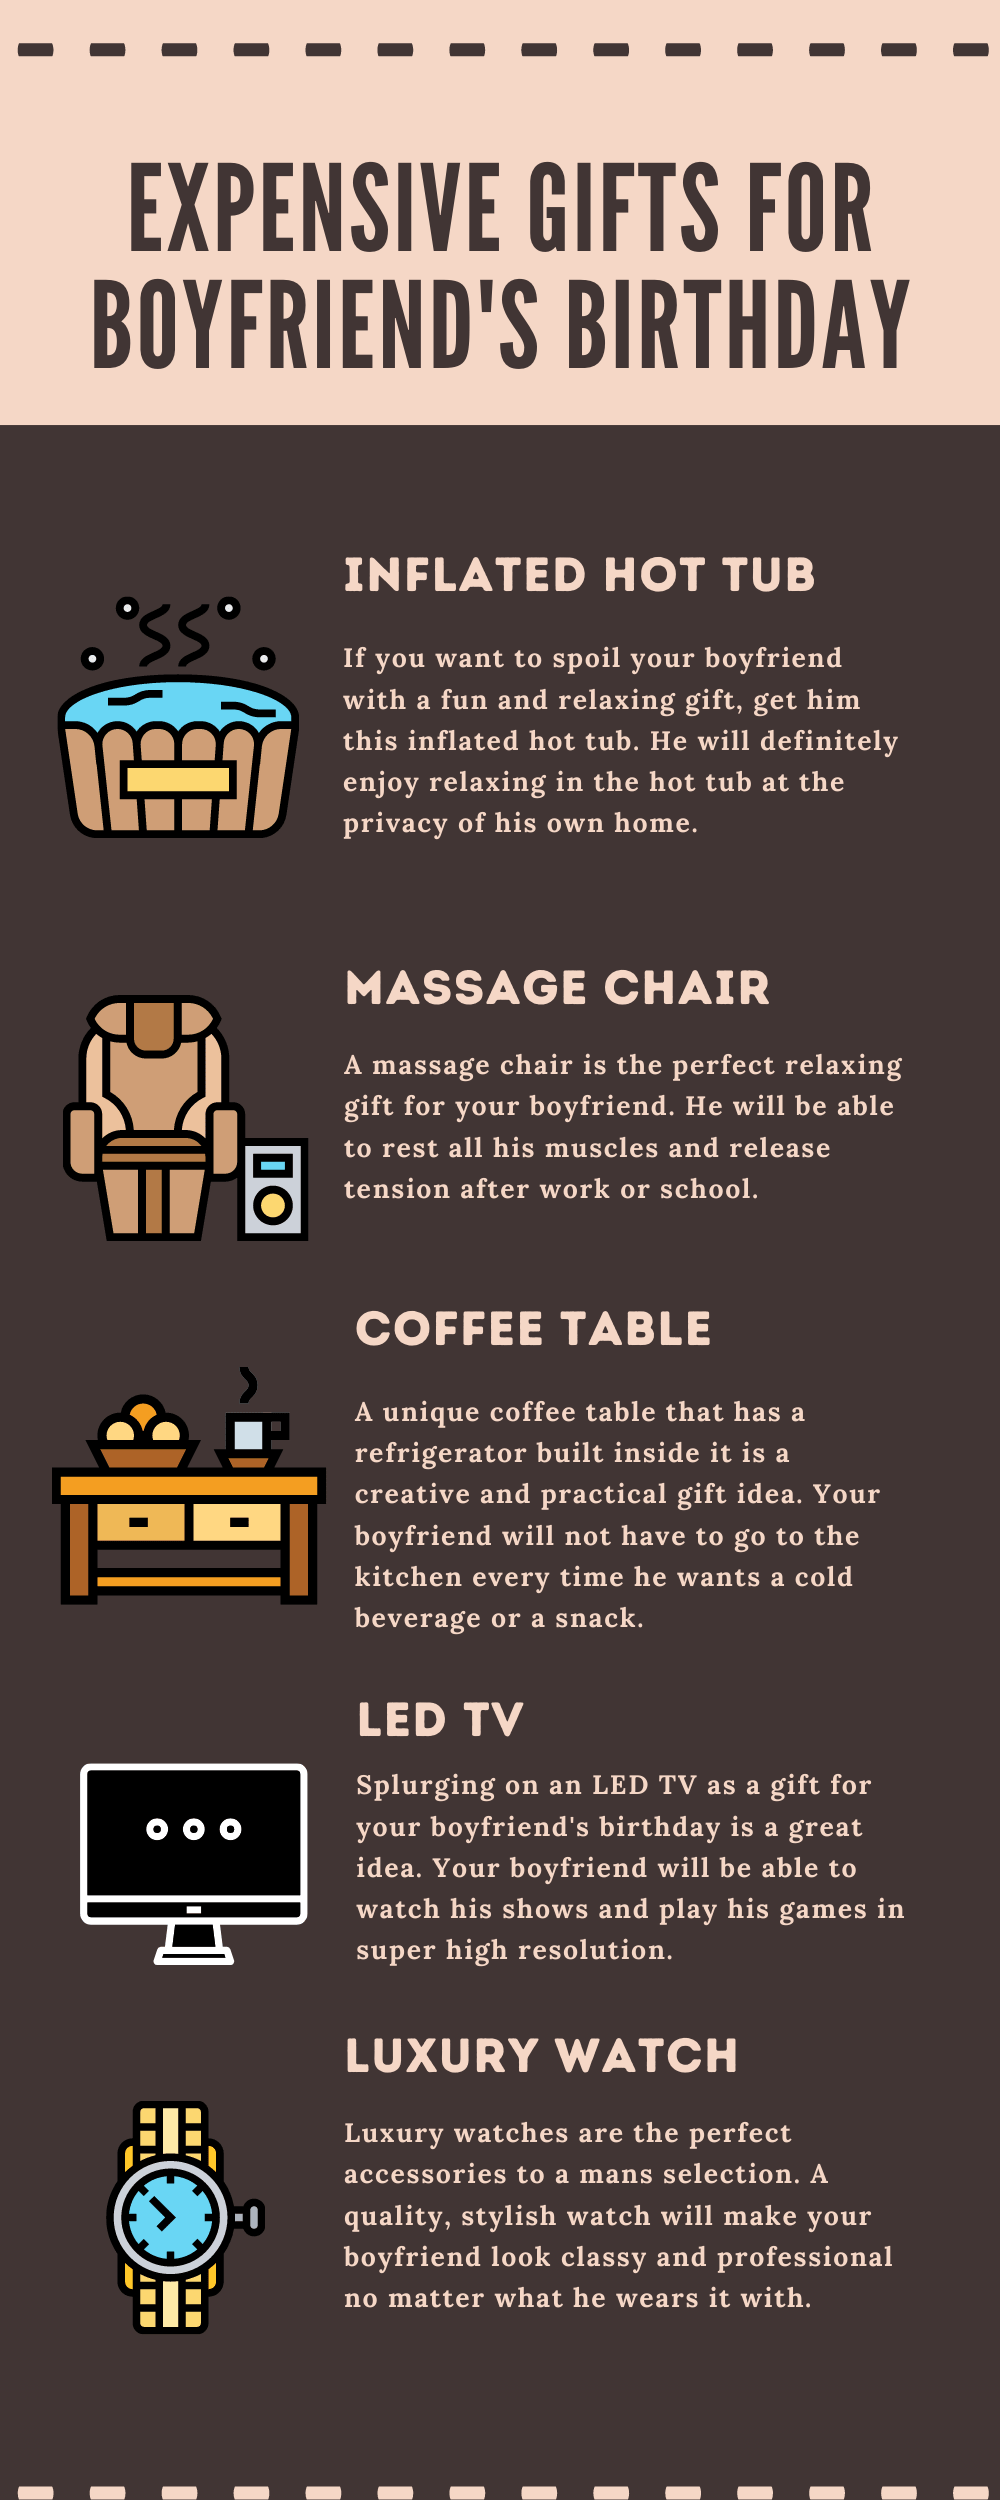 Infographic EXPENSIVE GIFTS FOR BOYFRIEND'S BIRTHDAY-min